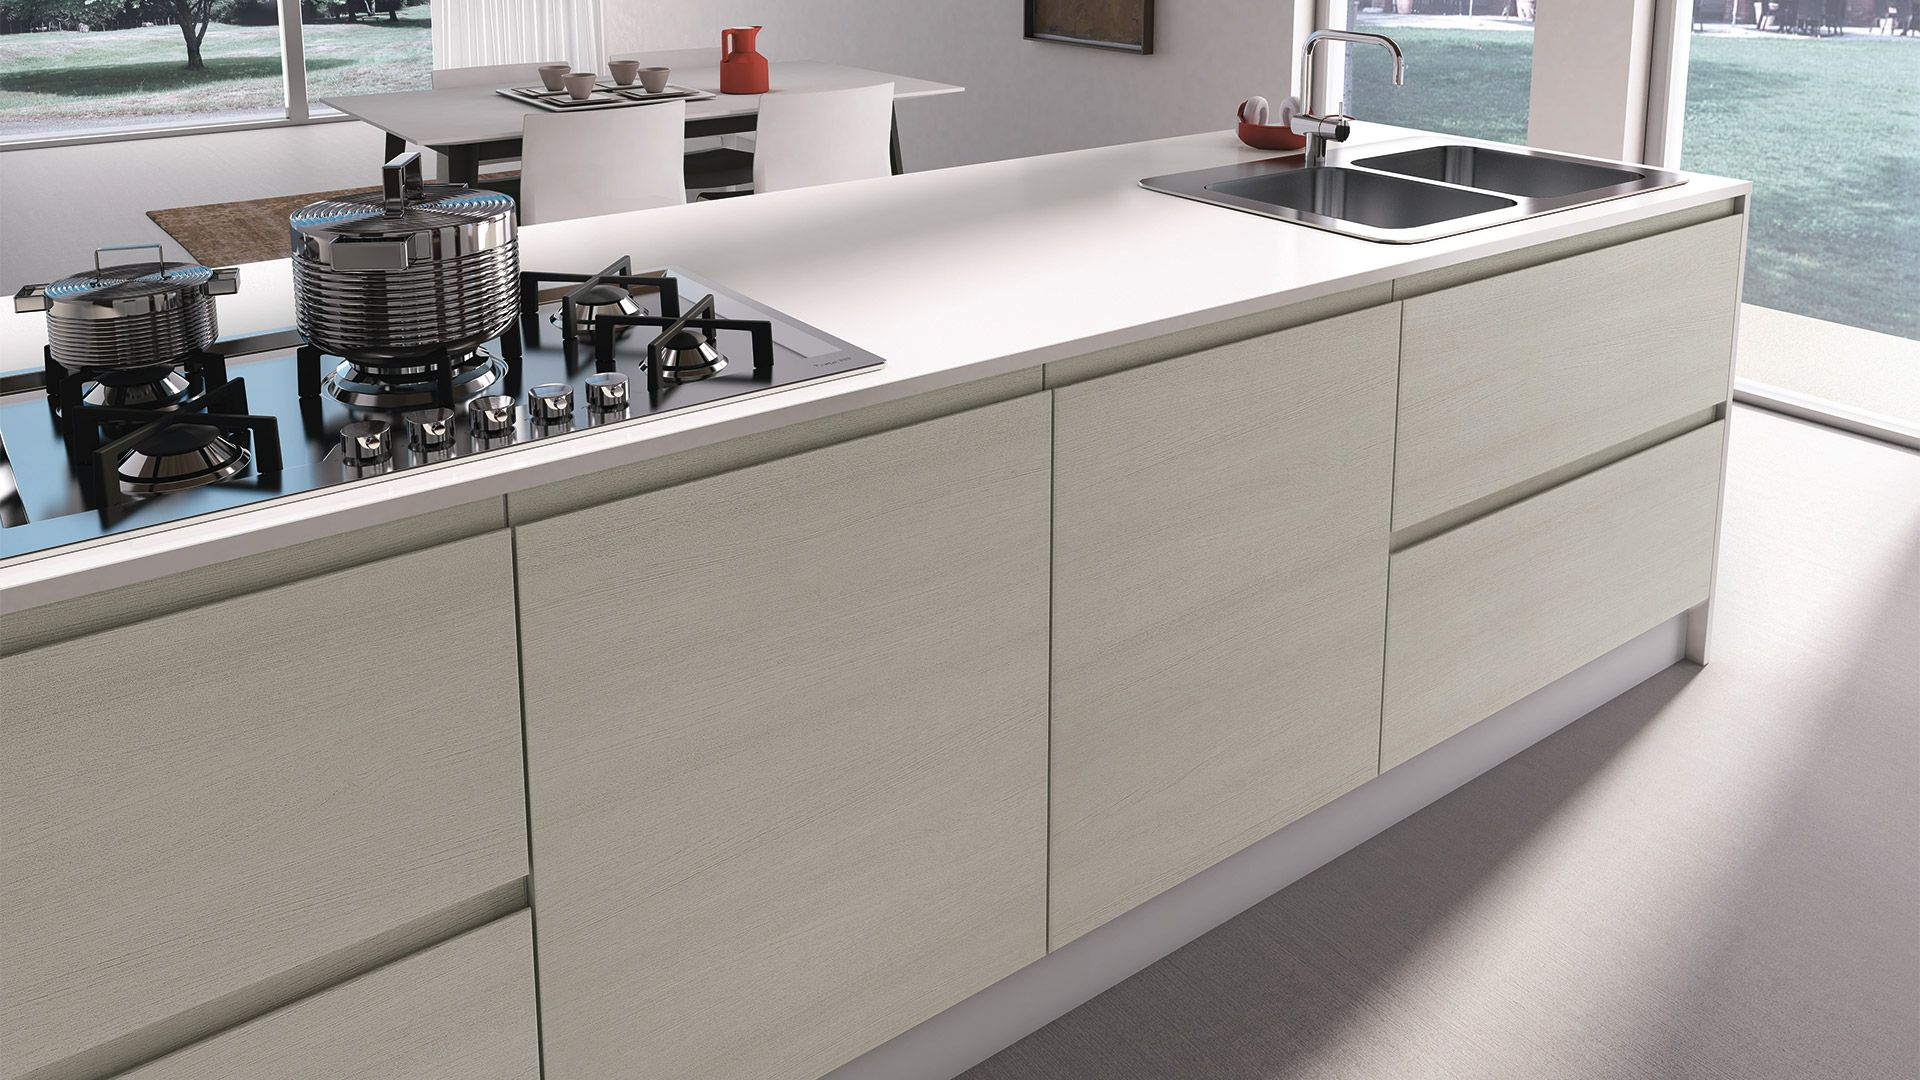 Cucina Jey - Cucine Moderne - Creo Kitchens nel 2019 ...